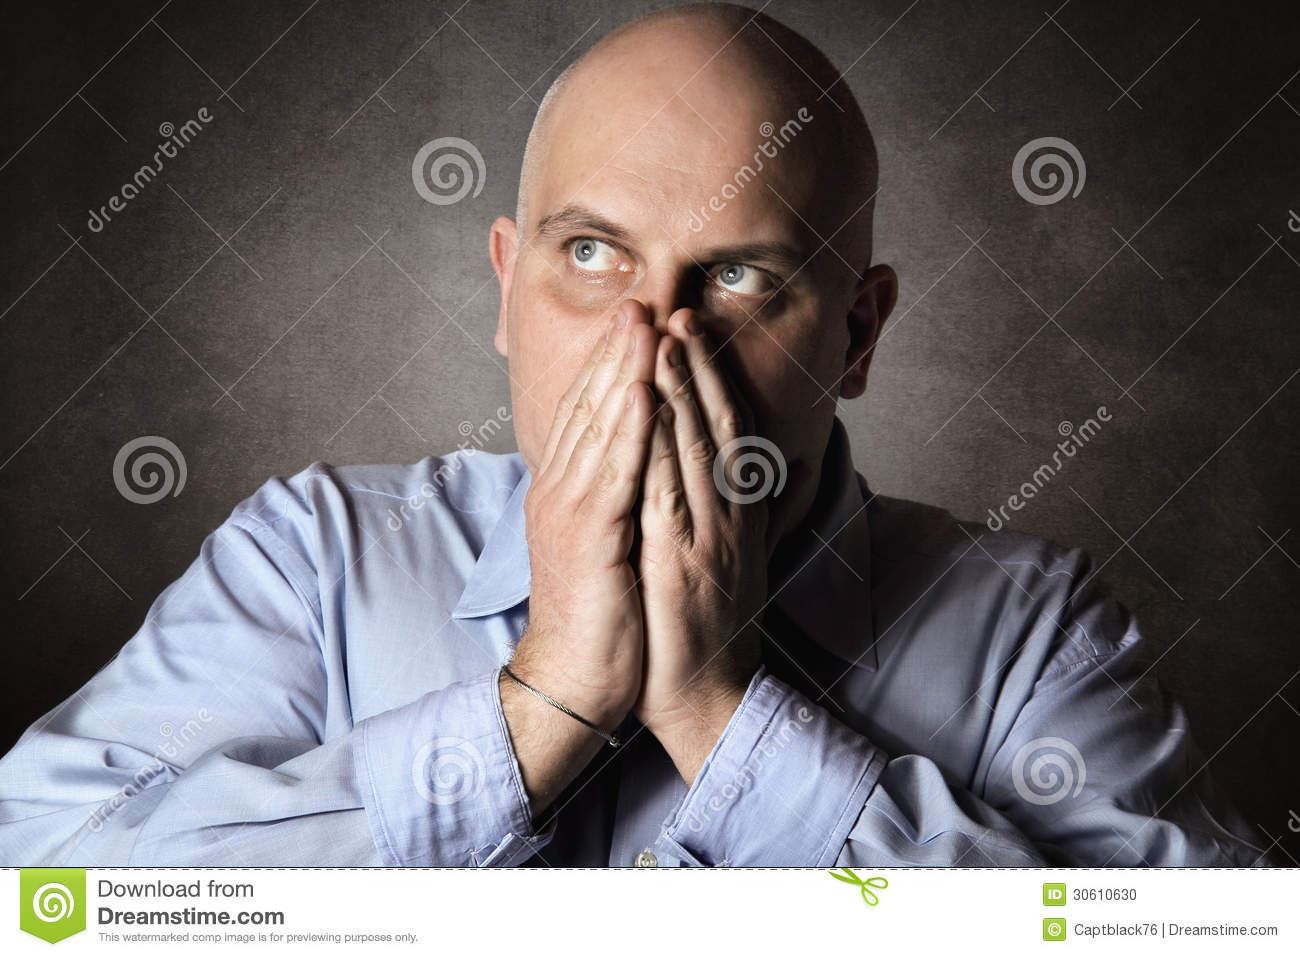 Man With Worried Expression Stock Photo - Image: 30610630